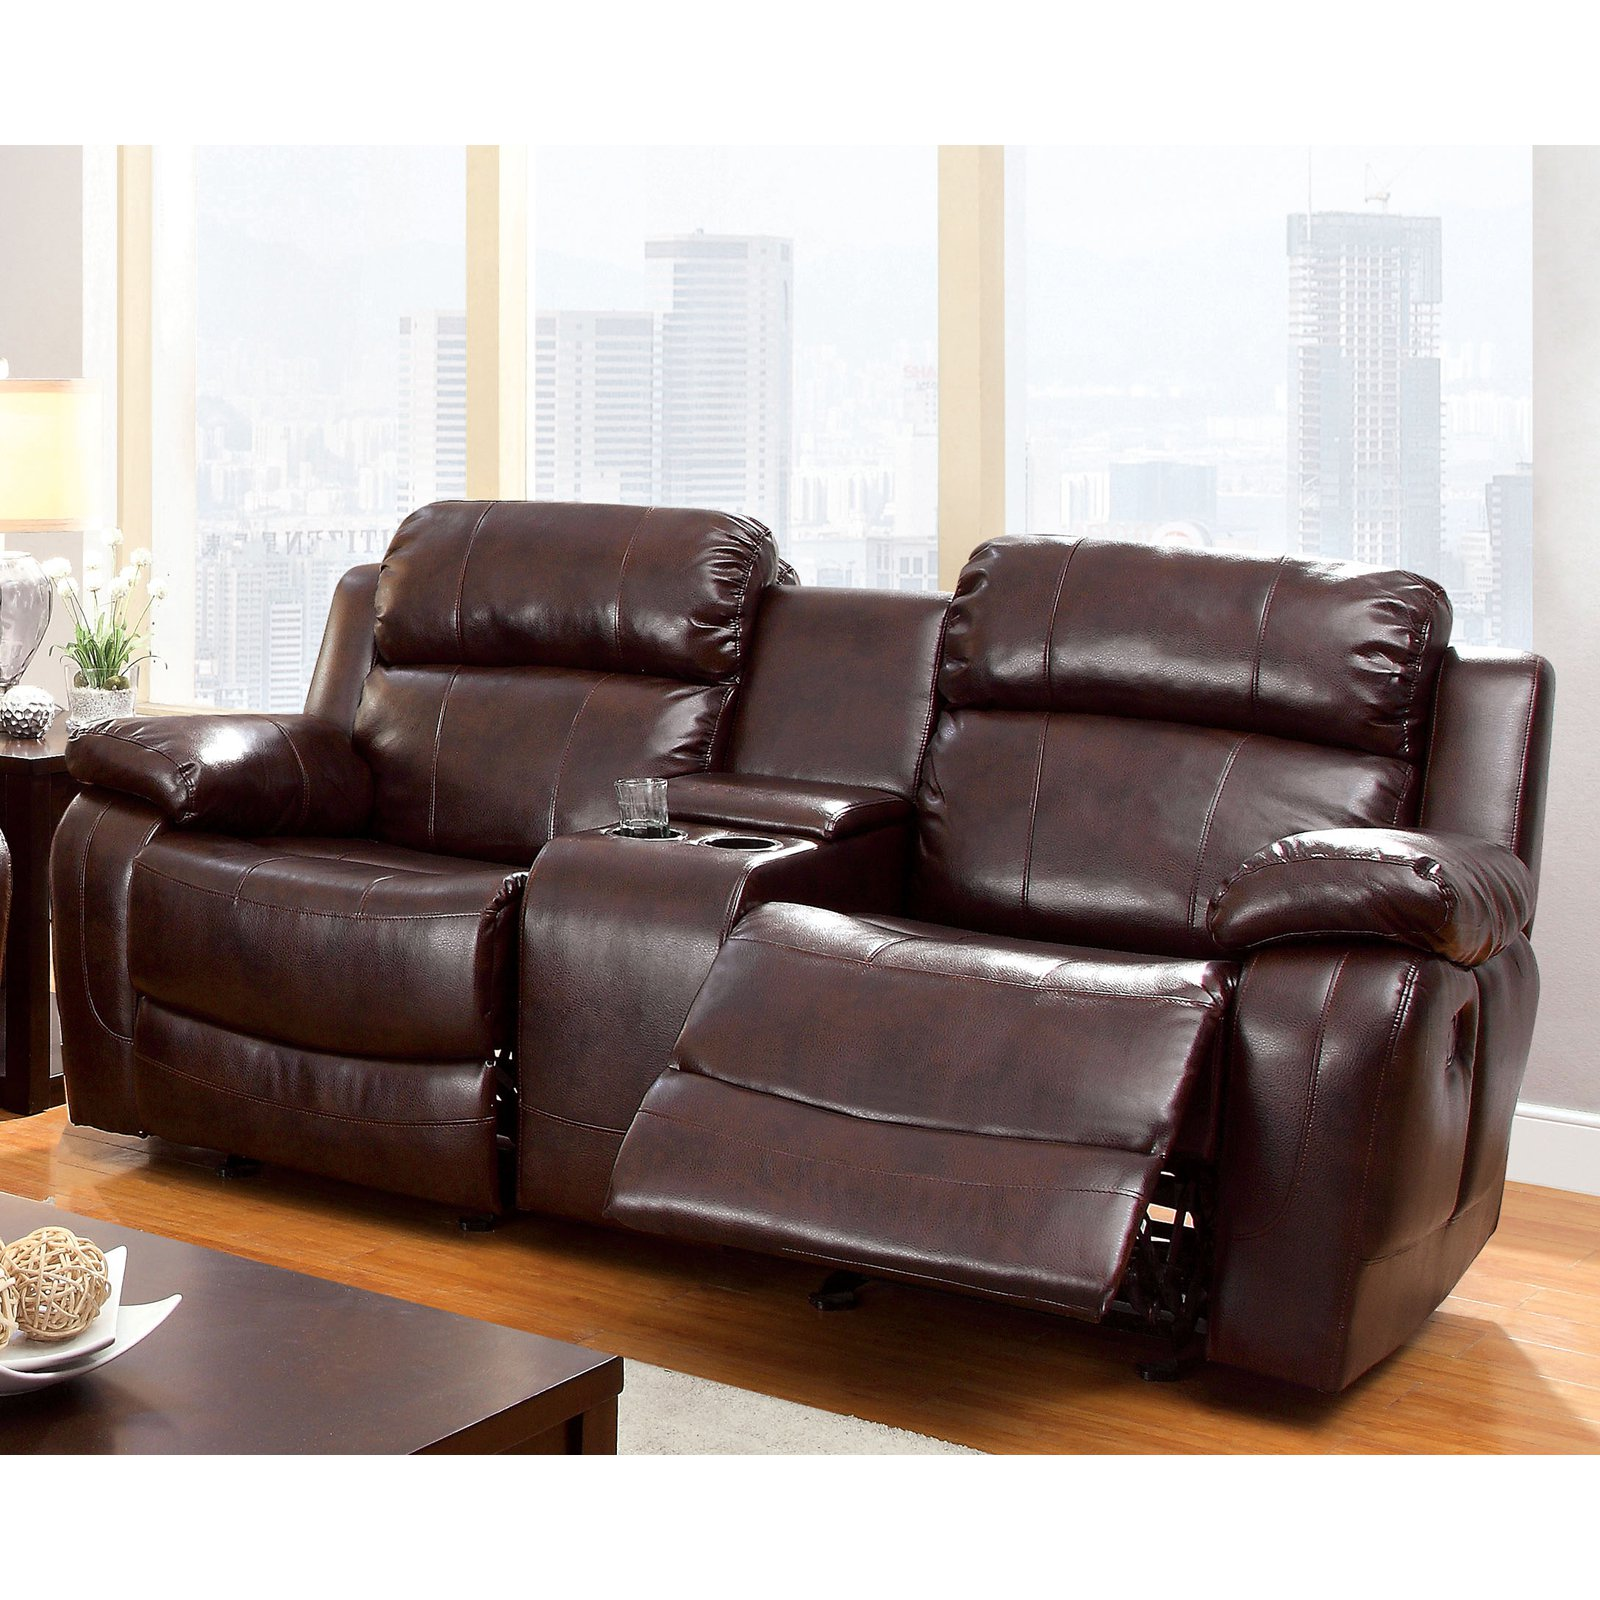 Furniture of America Hartwig Recliner Loveseat with Center Console  sc 1 st  Walmart & Recliner Loveseats islam-shia.org